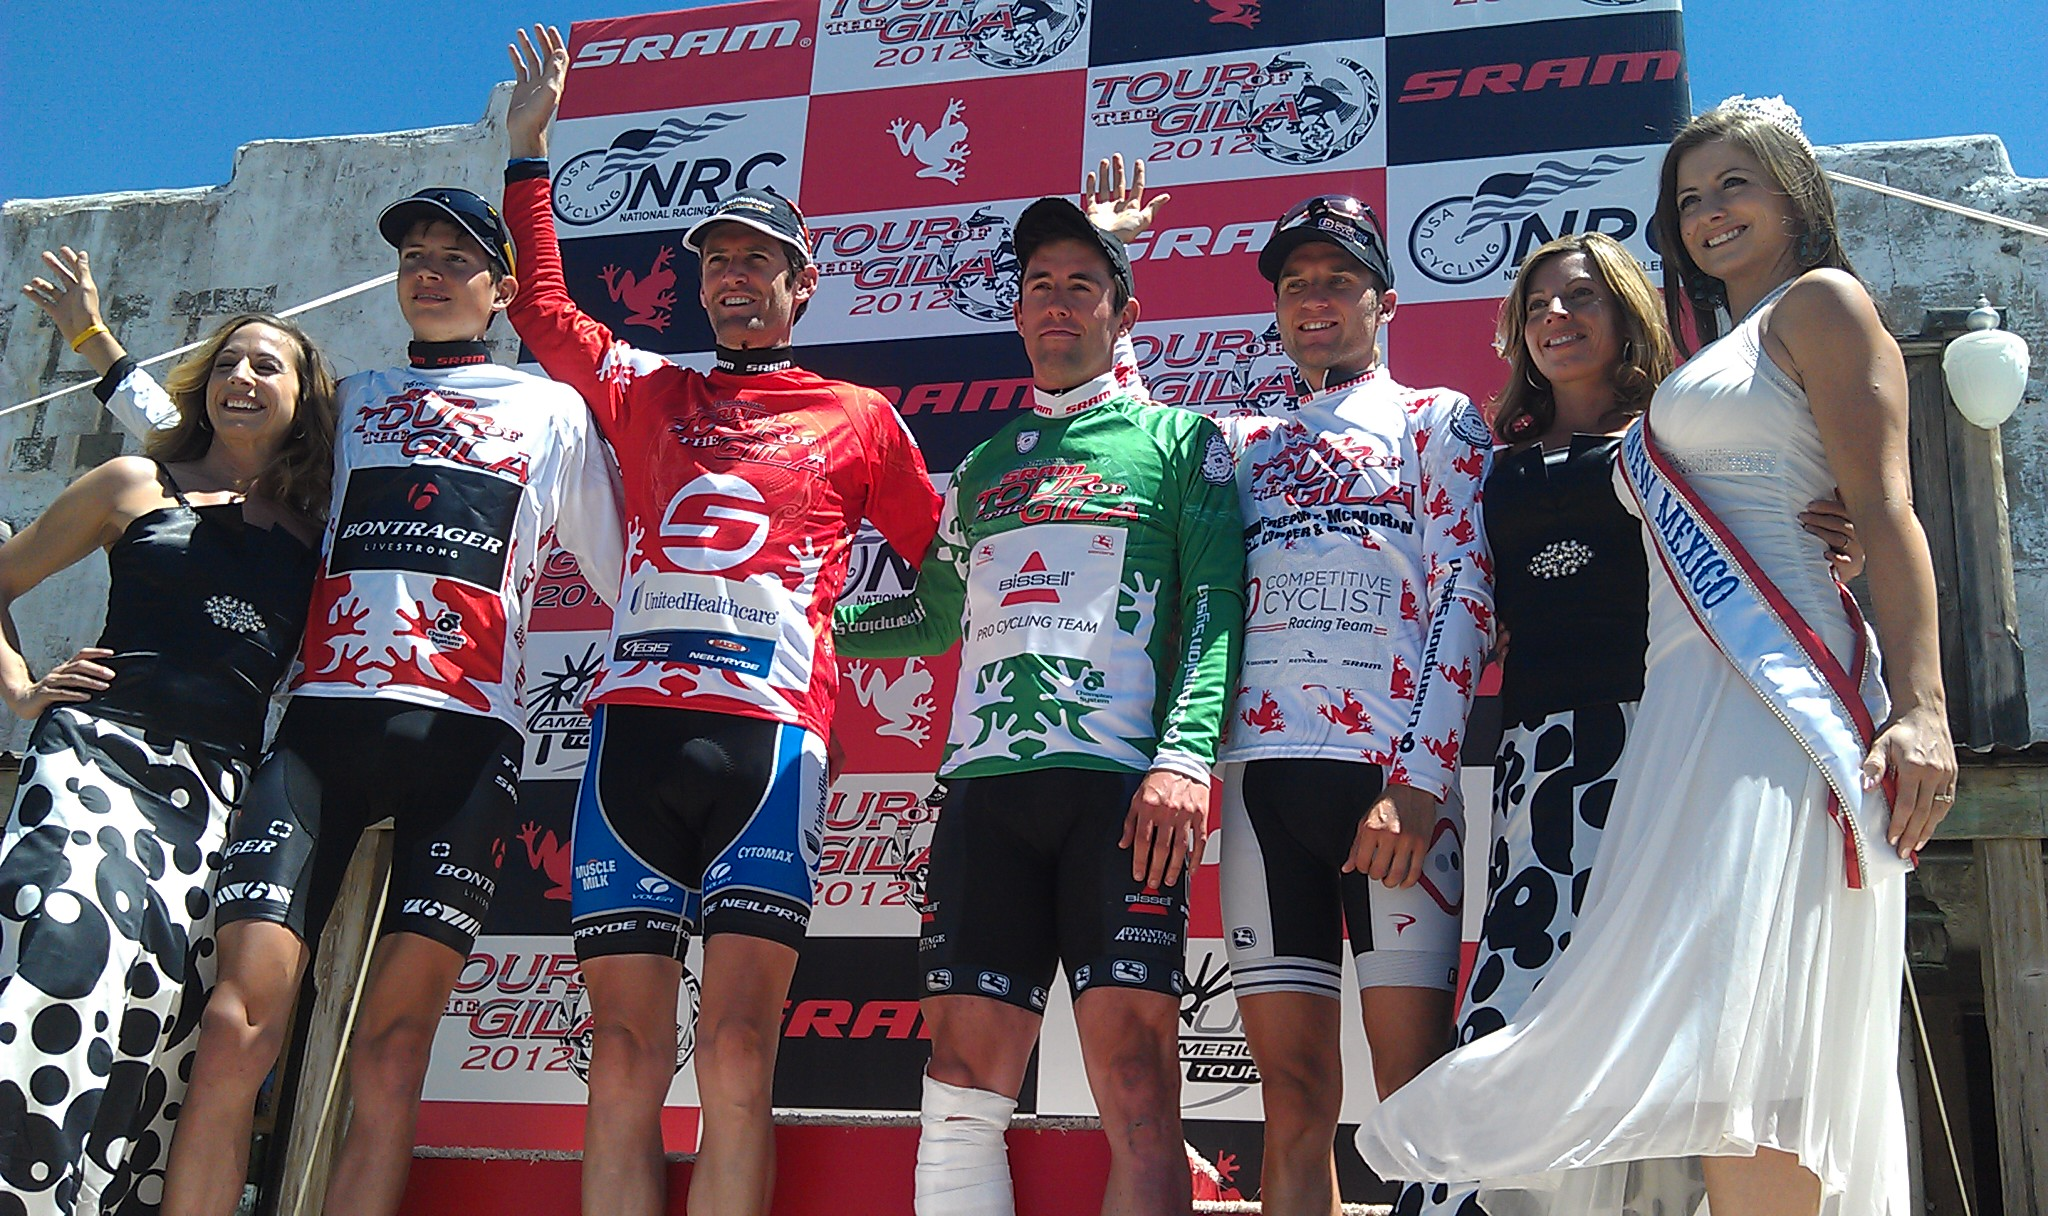 Chad Beyer on the podium at the SRAM Tour of the Gila. Photo Credit: On the Rivet Management